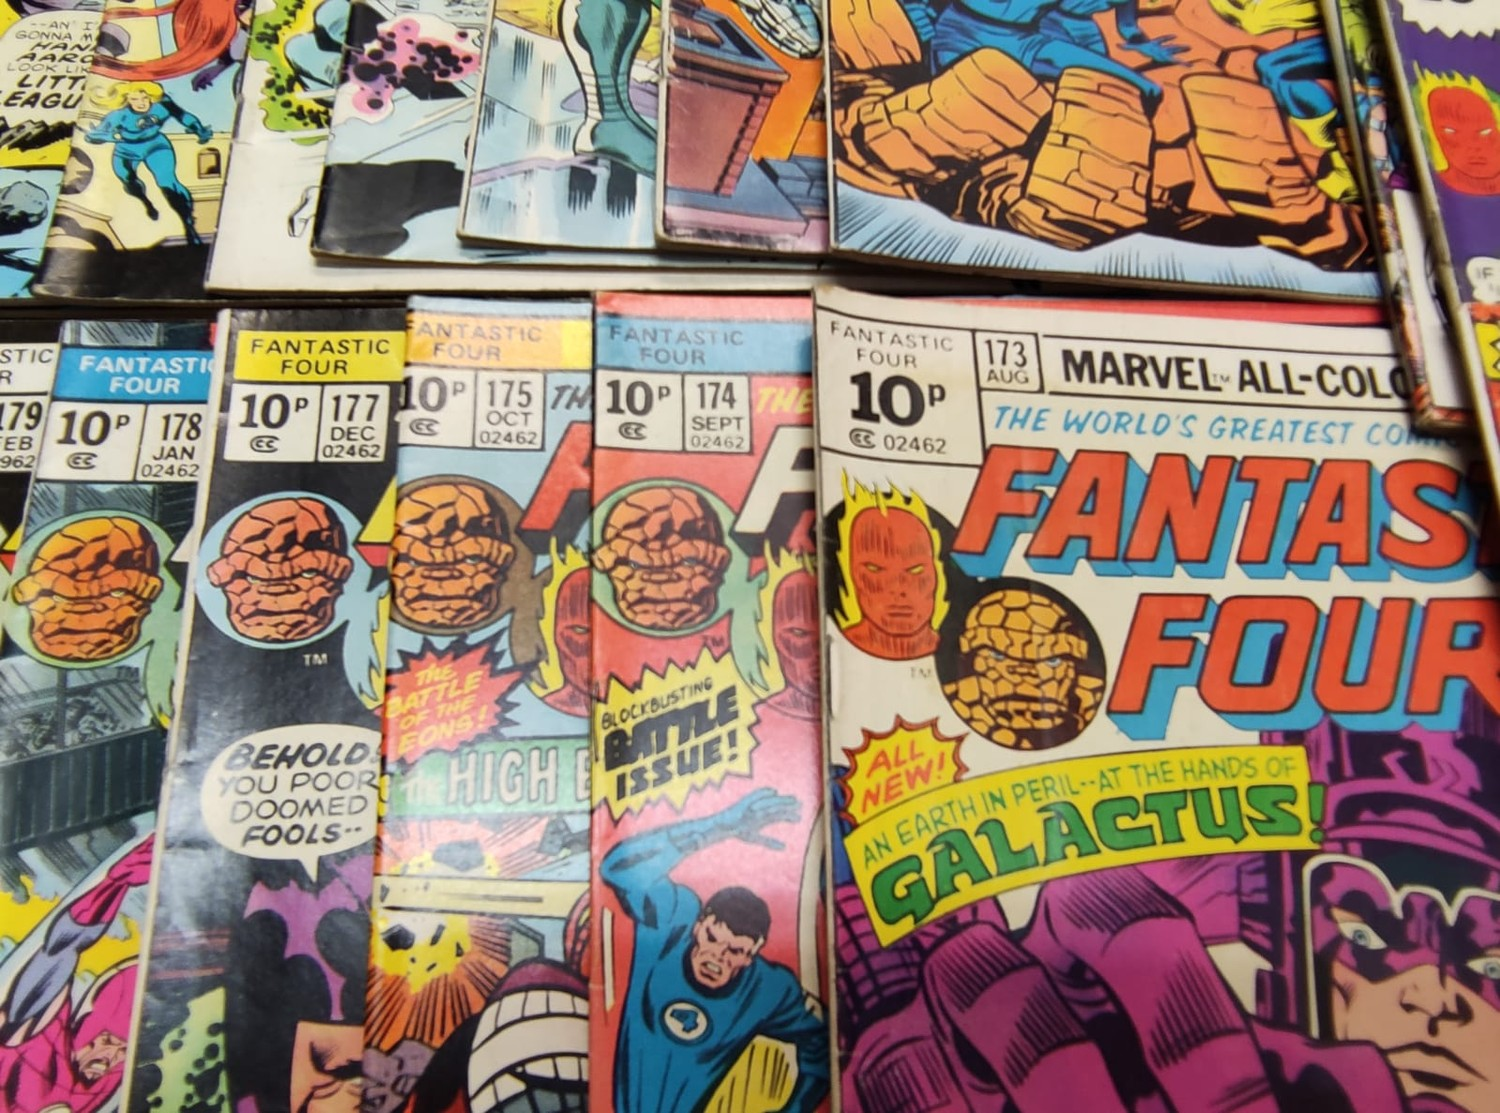 30x Marvel Fantastic four mid 1970s editions. Used, in good condition. - Image 10 of 17